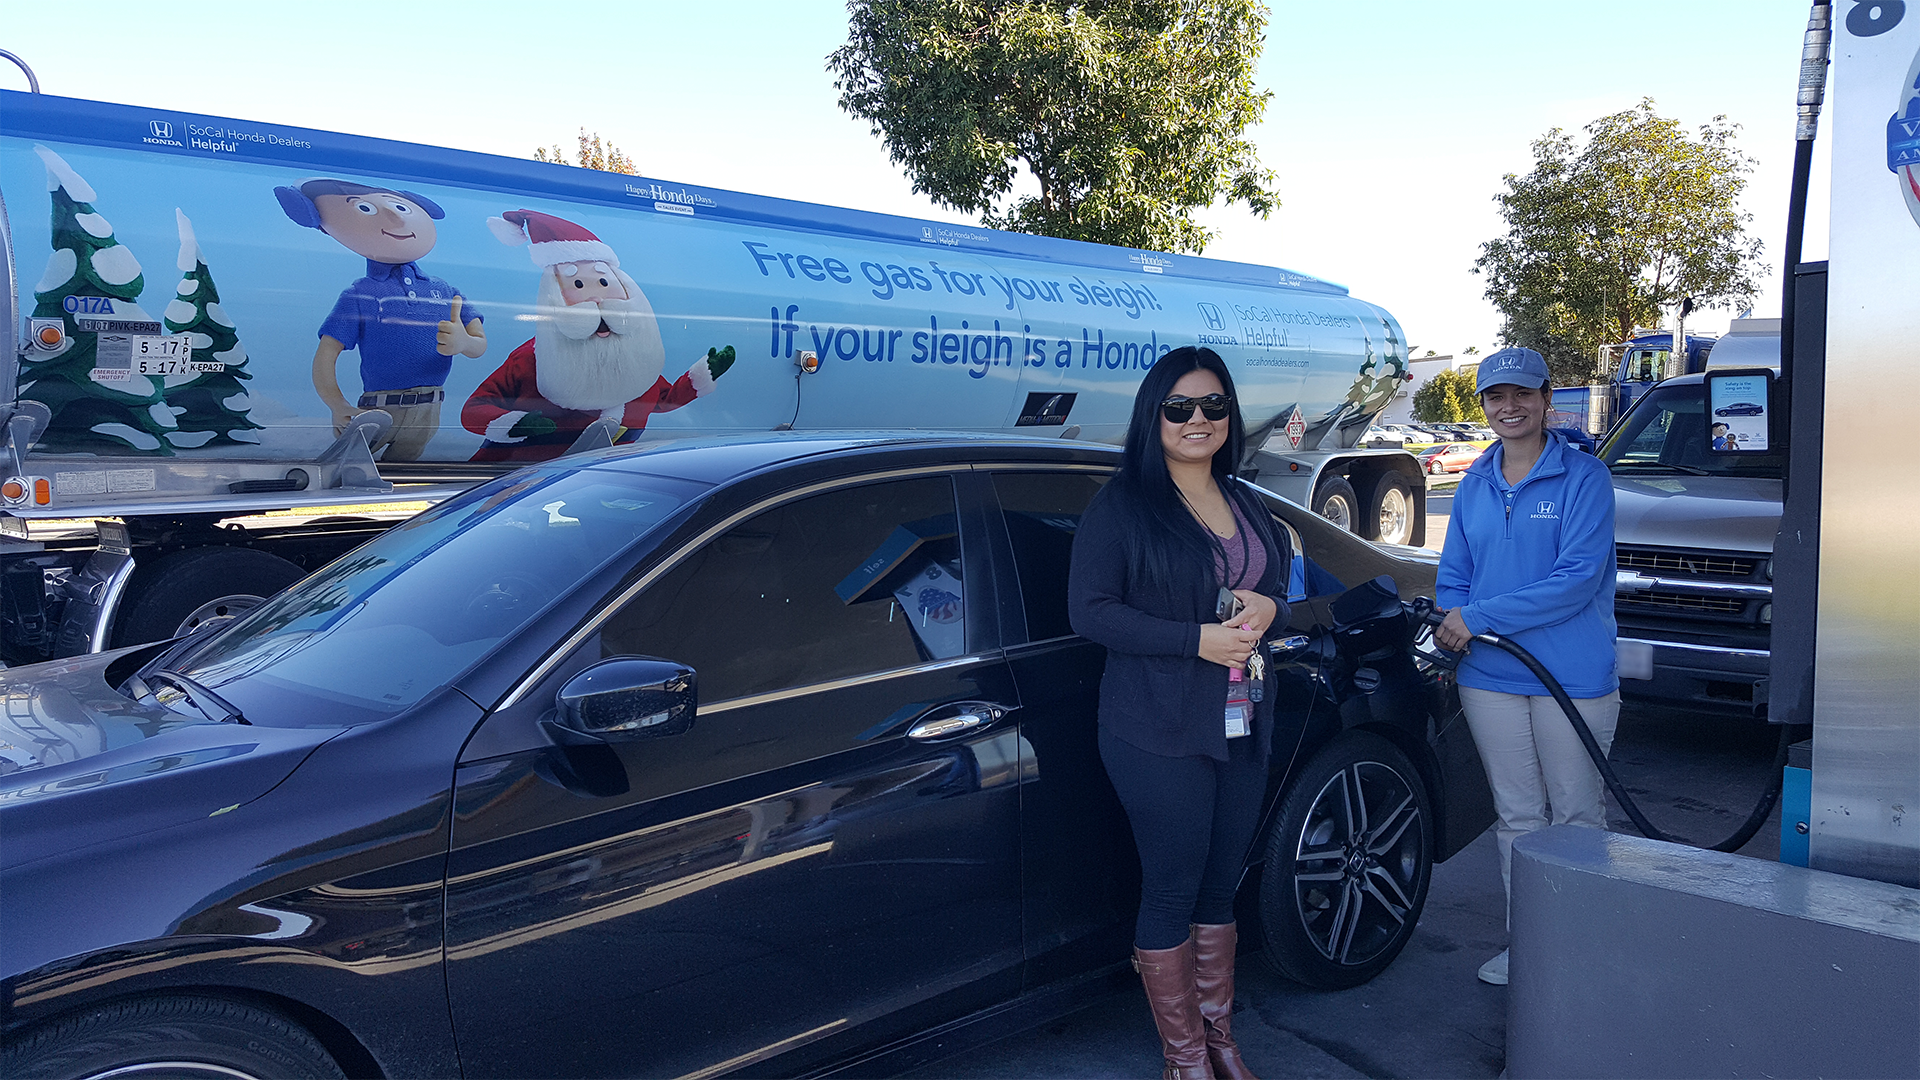 Helpful honda holiday treats truck and tanker truck for Long beach honda dealer